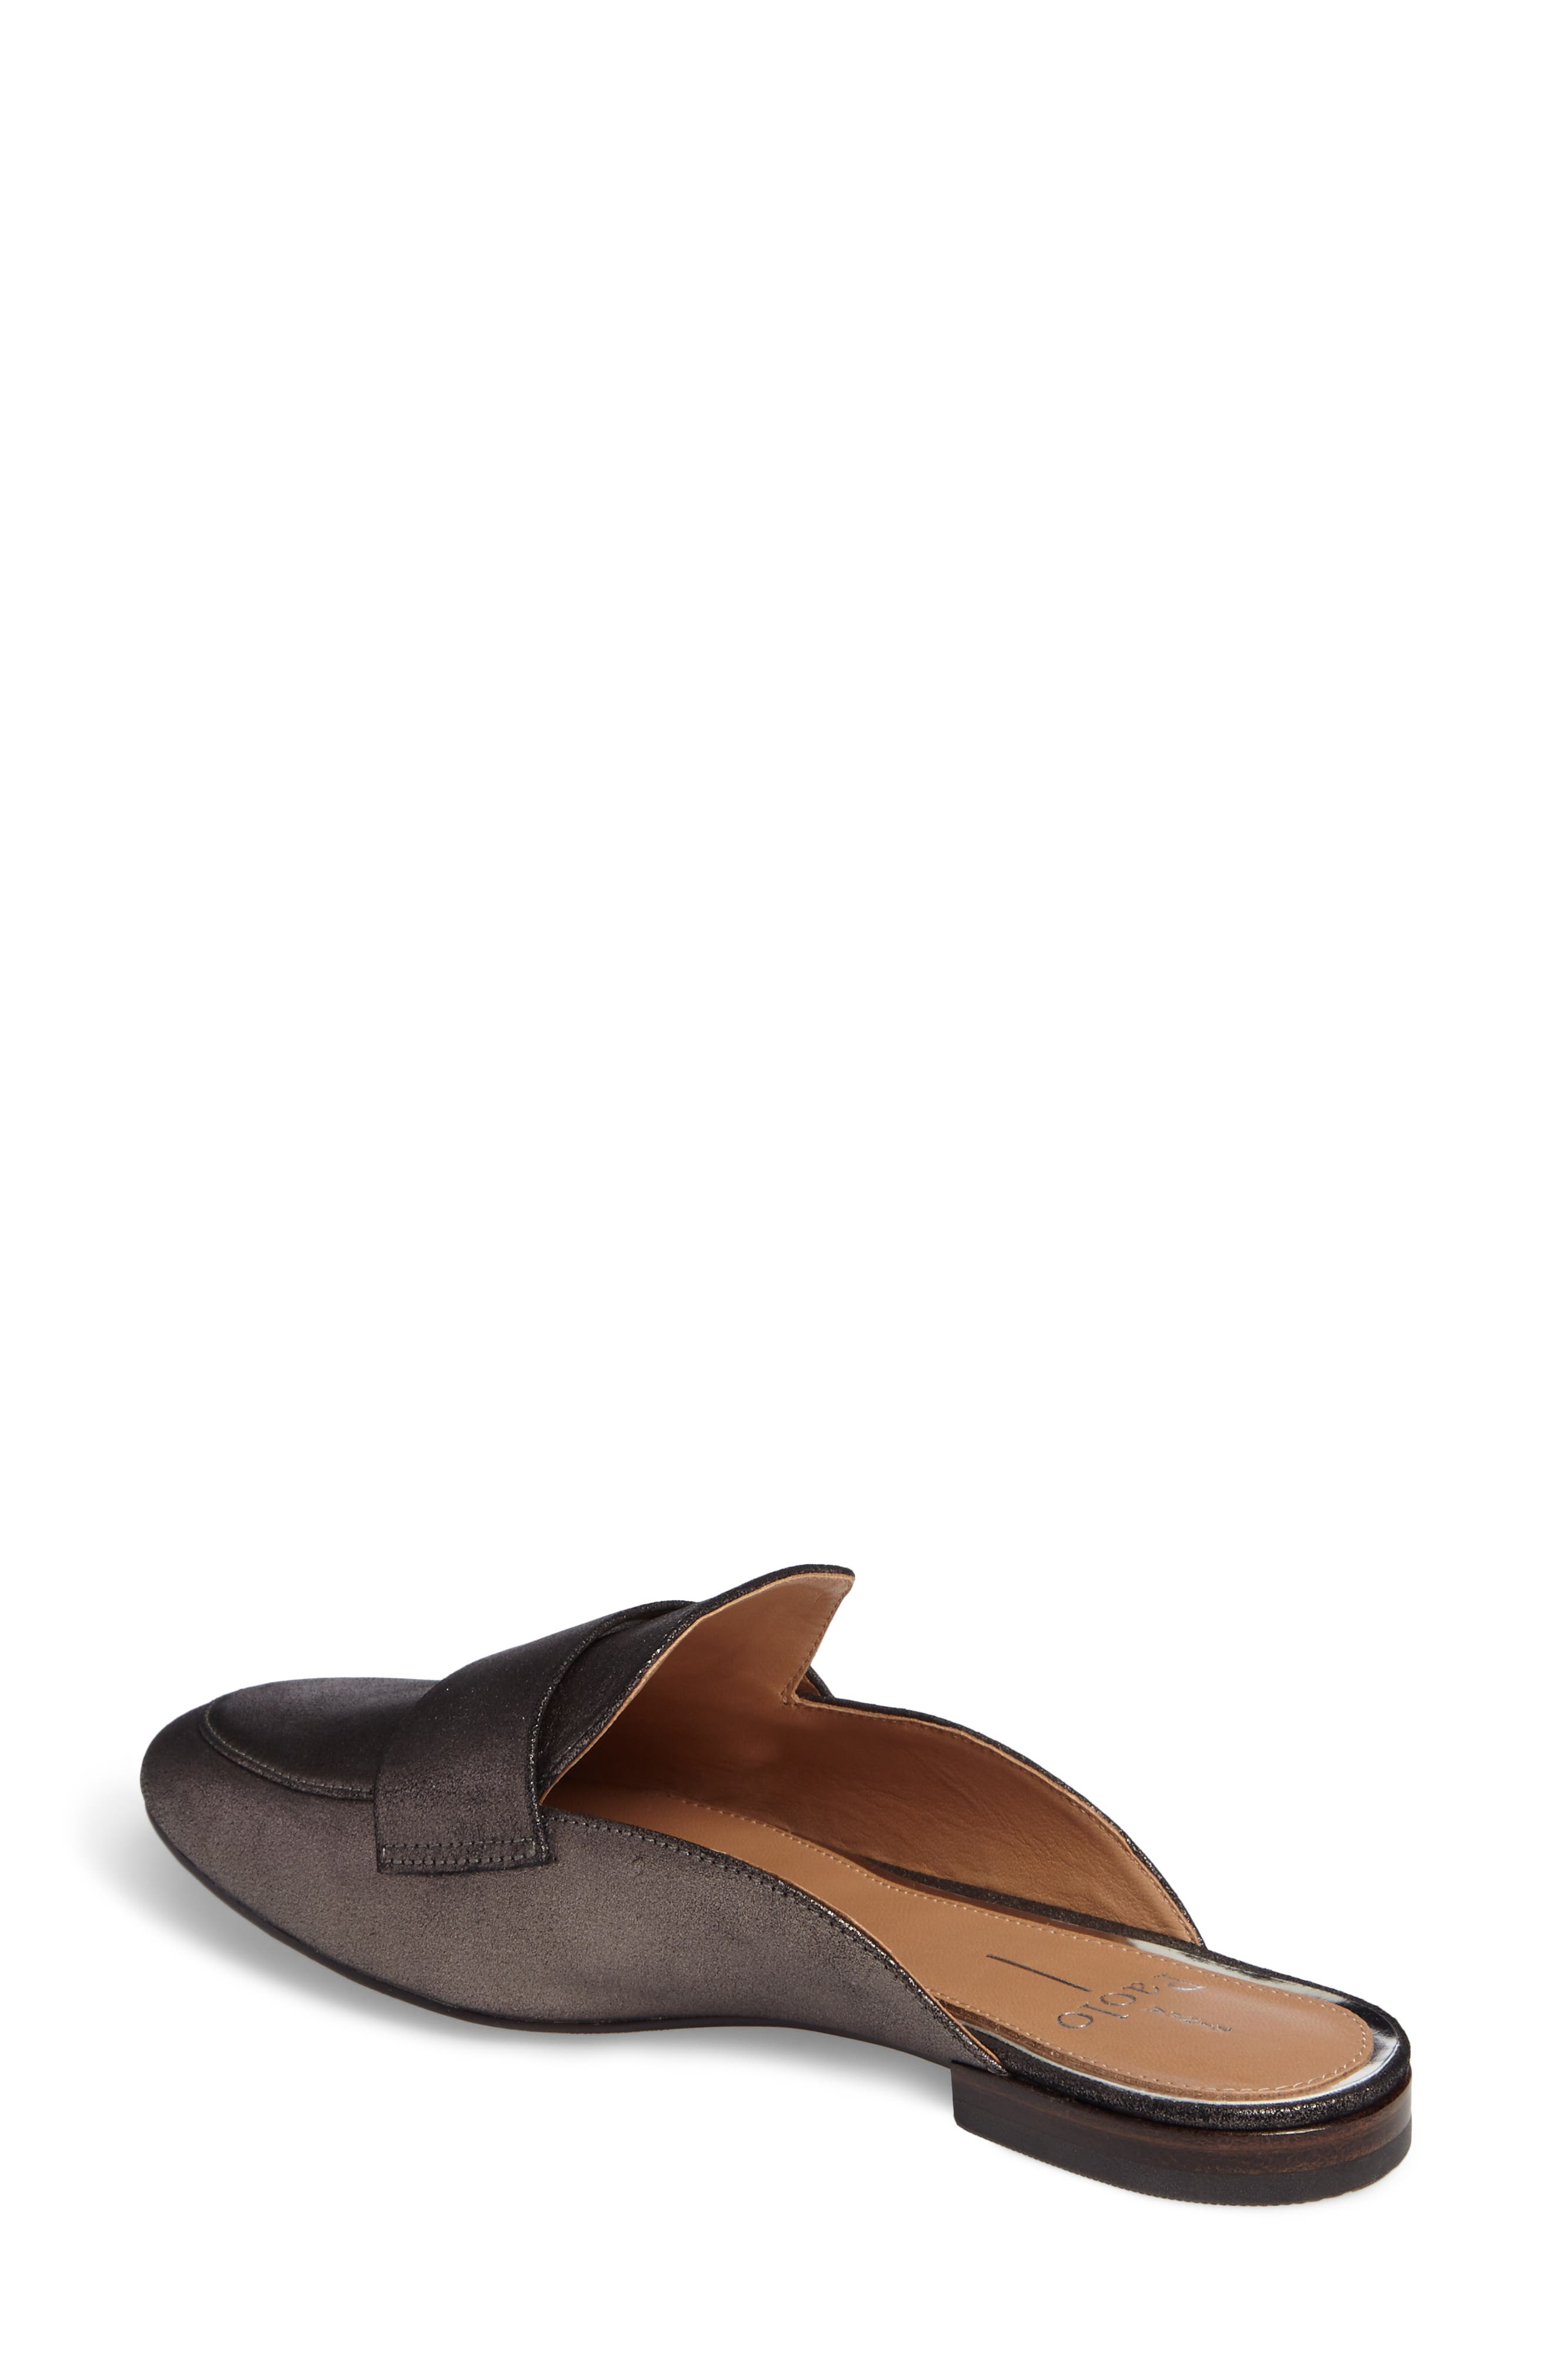 LINEA PAOLO, Annie Loafer Mule, Alternate thumbnail 2, color, PEWTER SUEDE